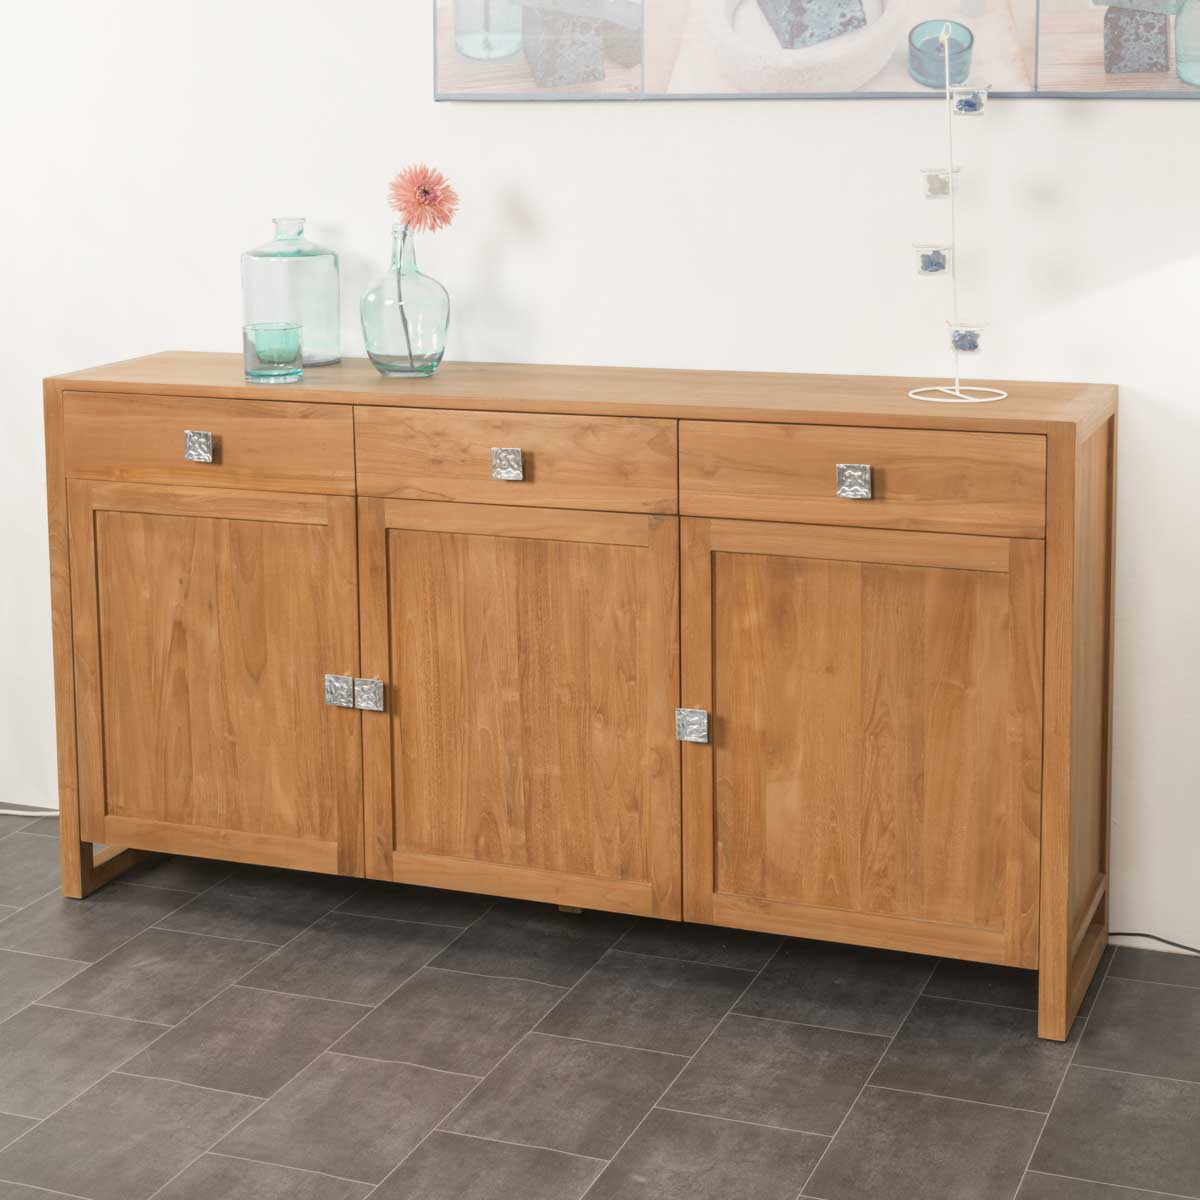 Buffet De Salon En Bois De Teck Massif Thea Rectangle Naturel  # Buffet De Salon En Bois